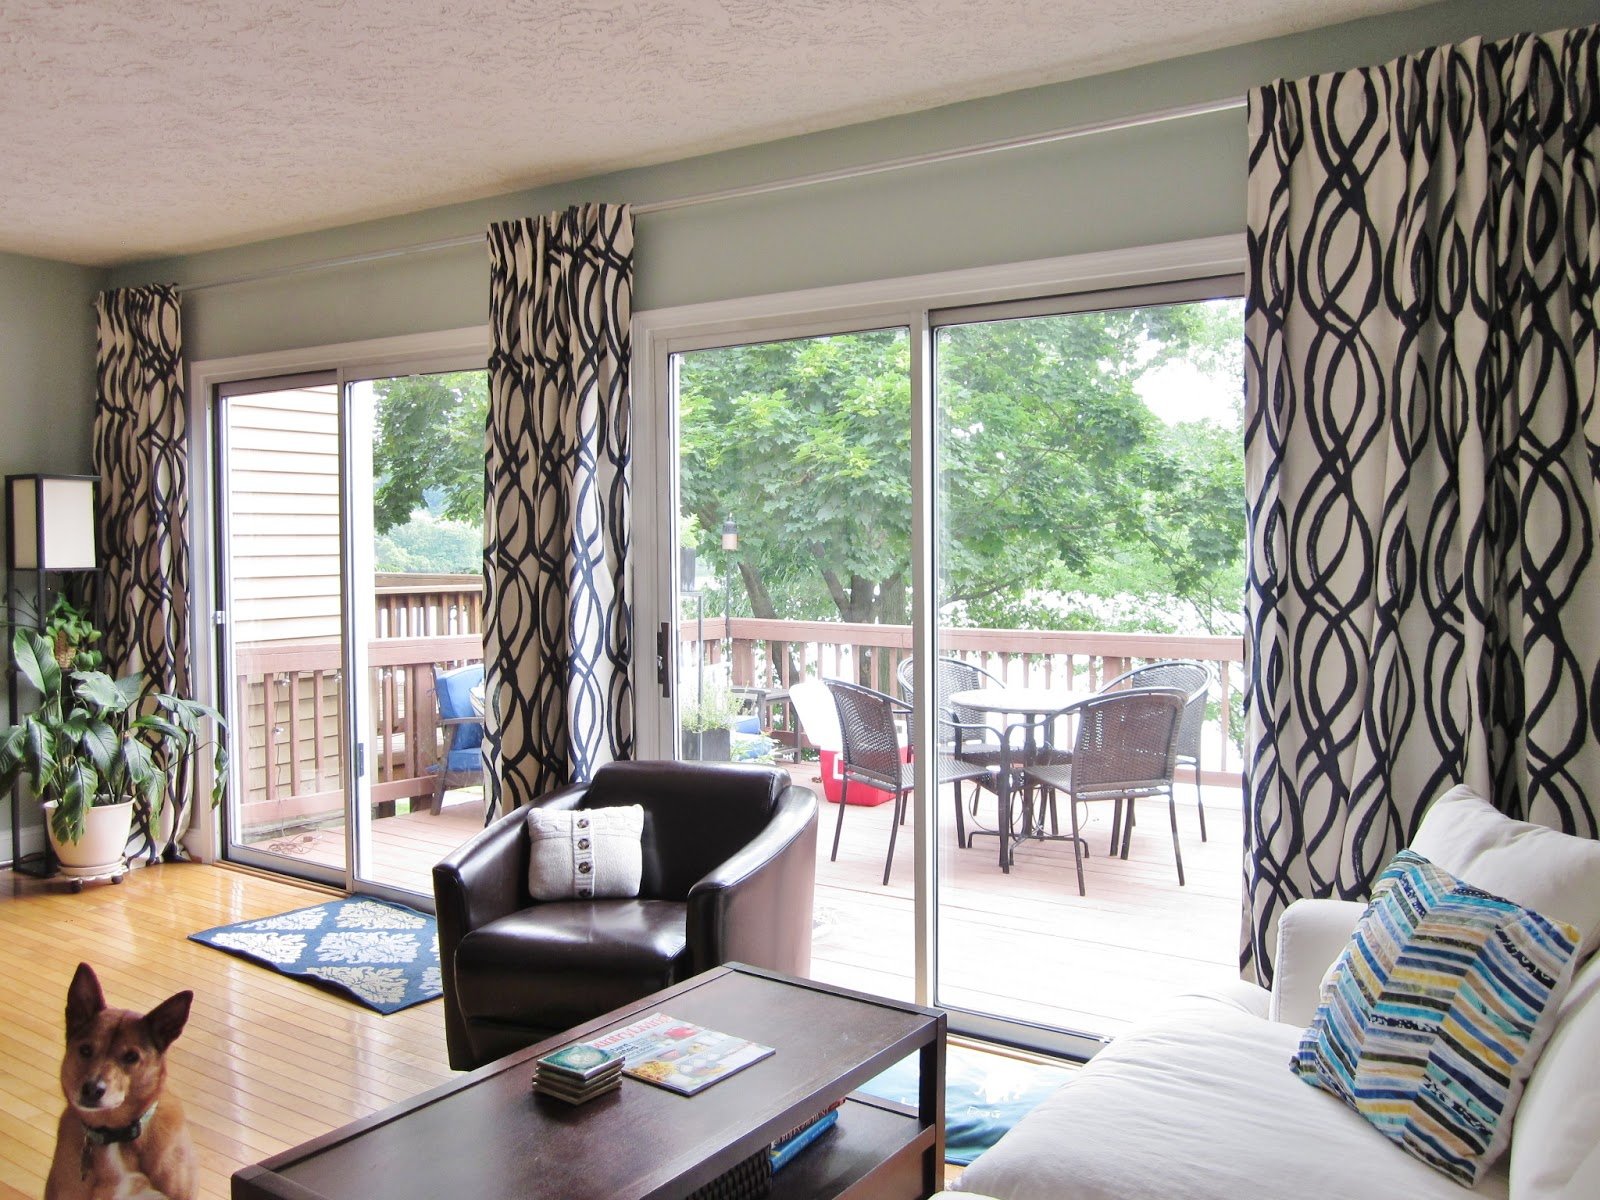 Awesome Extra Long Curtain Rods For Sliding Glass Door With Wooden Laminate Floor And Coffee